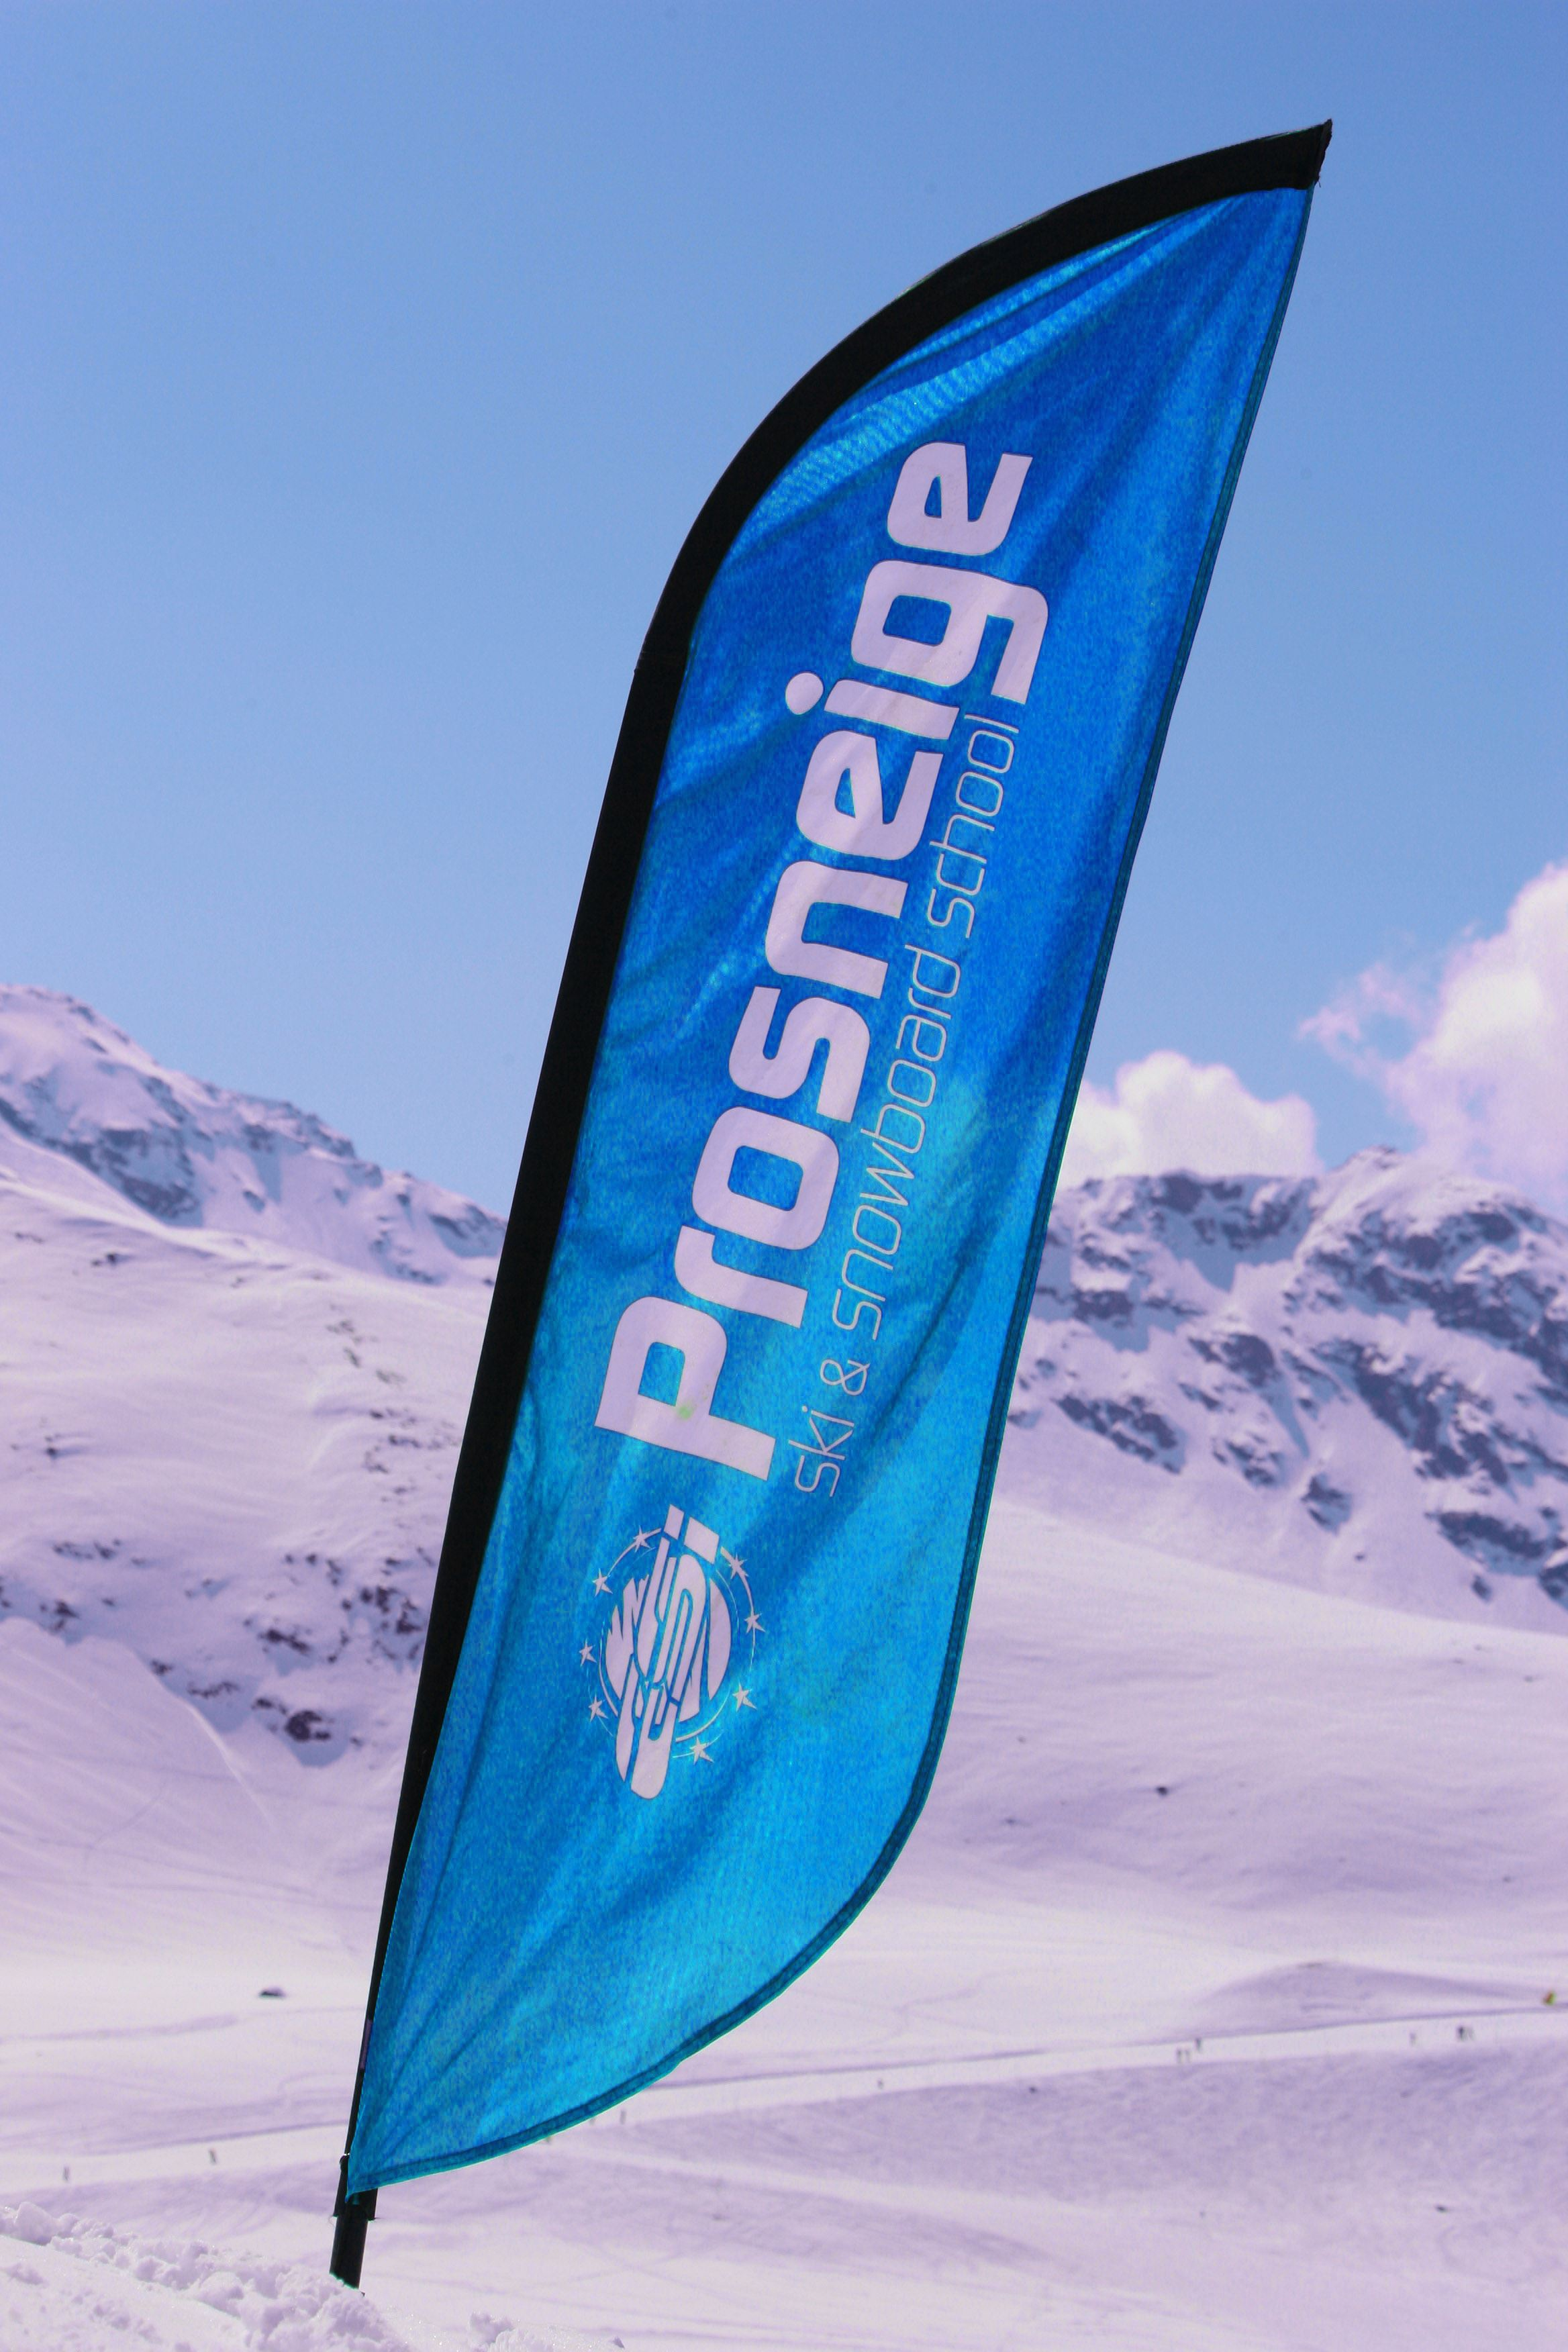 PROSNEIGE SKI SCHOOL - Morning group lessons - Prosneige